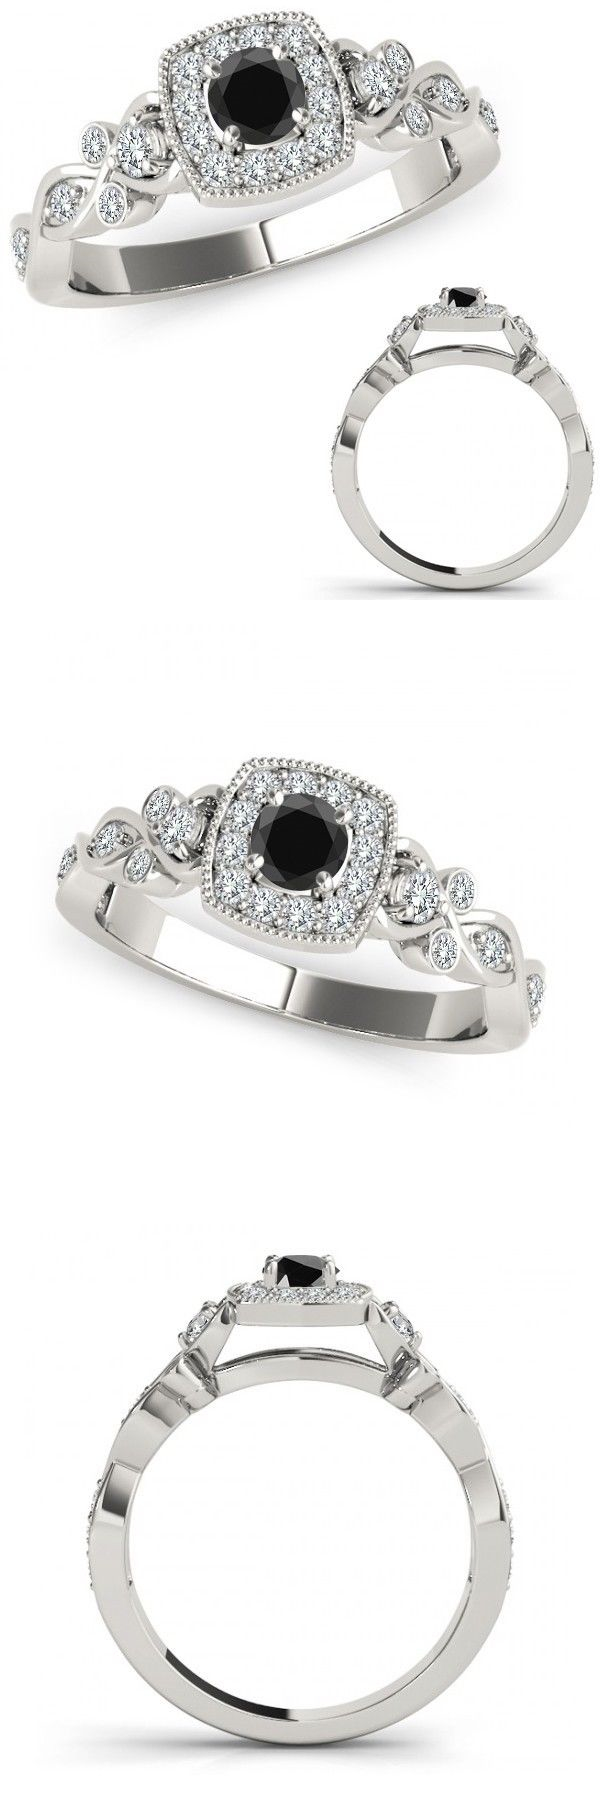 Other engagement rings carat black diamond cushion